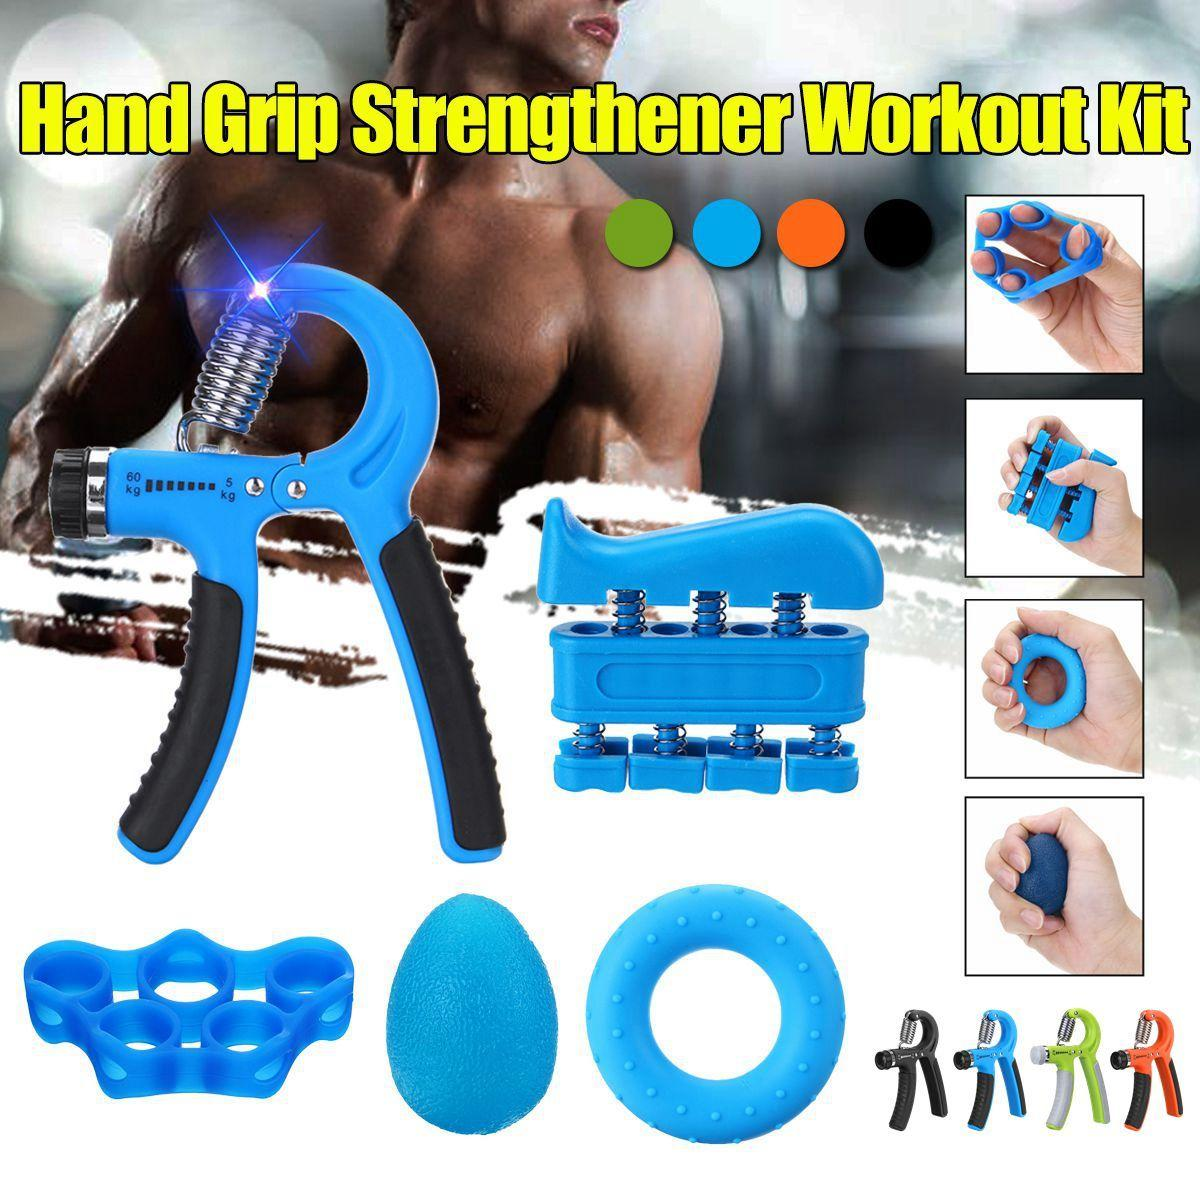 5pcs/set Adjustable Hand Grip Power Exerciser Strengthener Strength Trainer Hand Exerciser Gripper Exercise Fitness Workout Kit Y200506